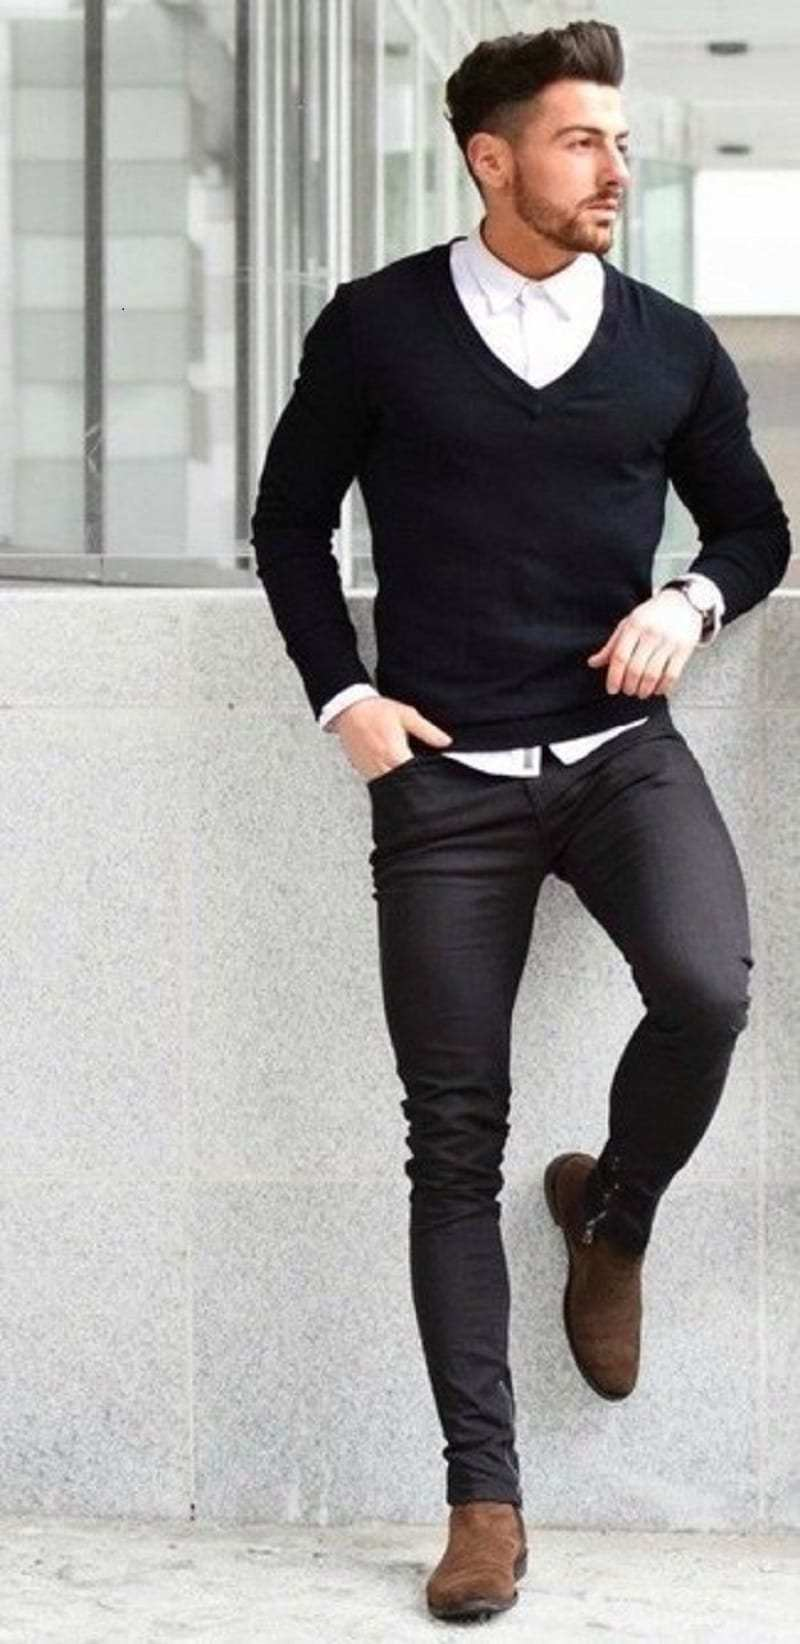 Working outfit with skinny black jeans